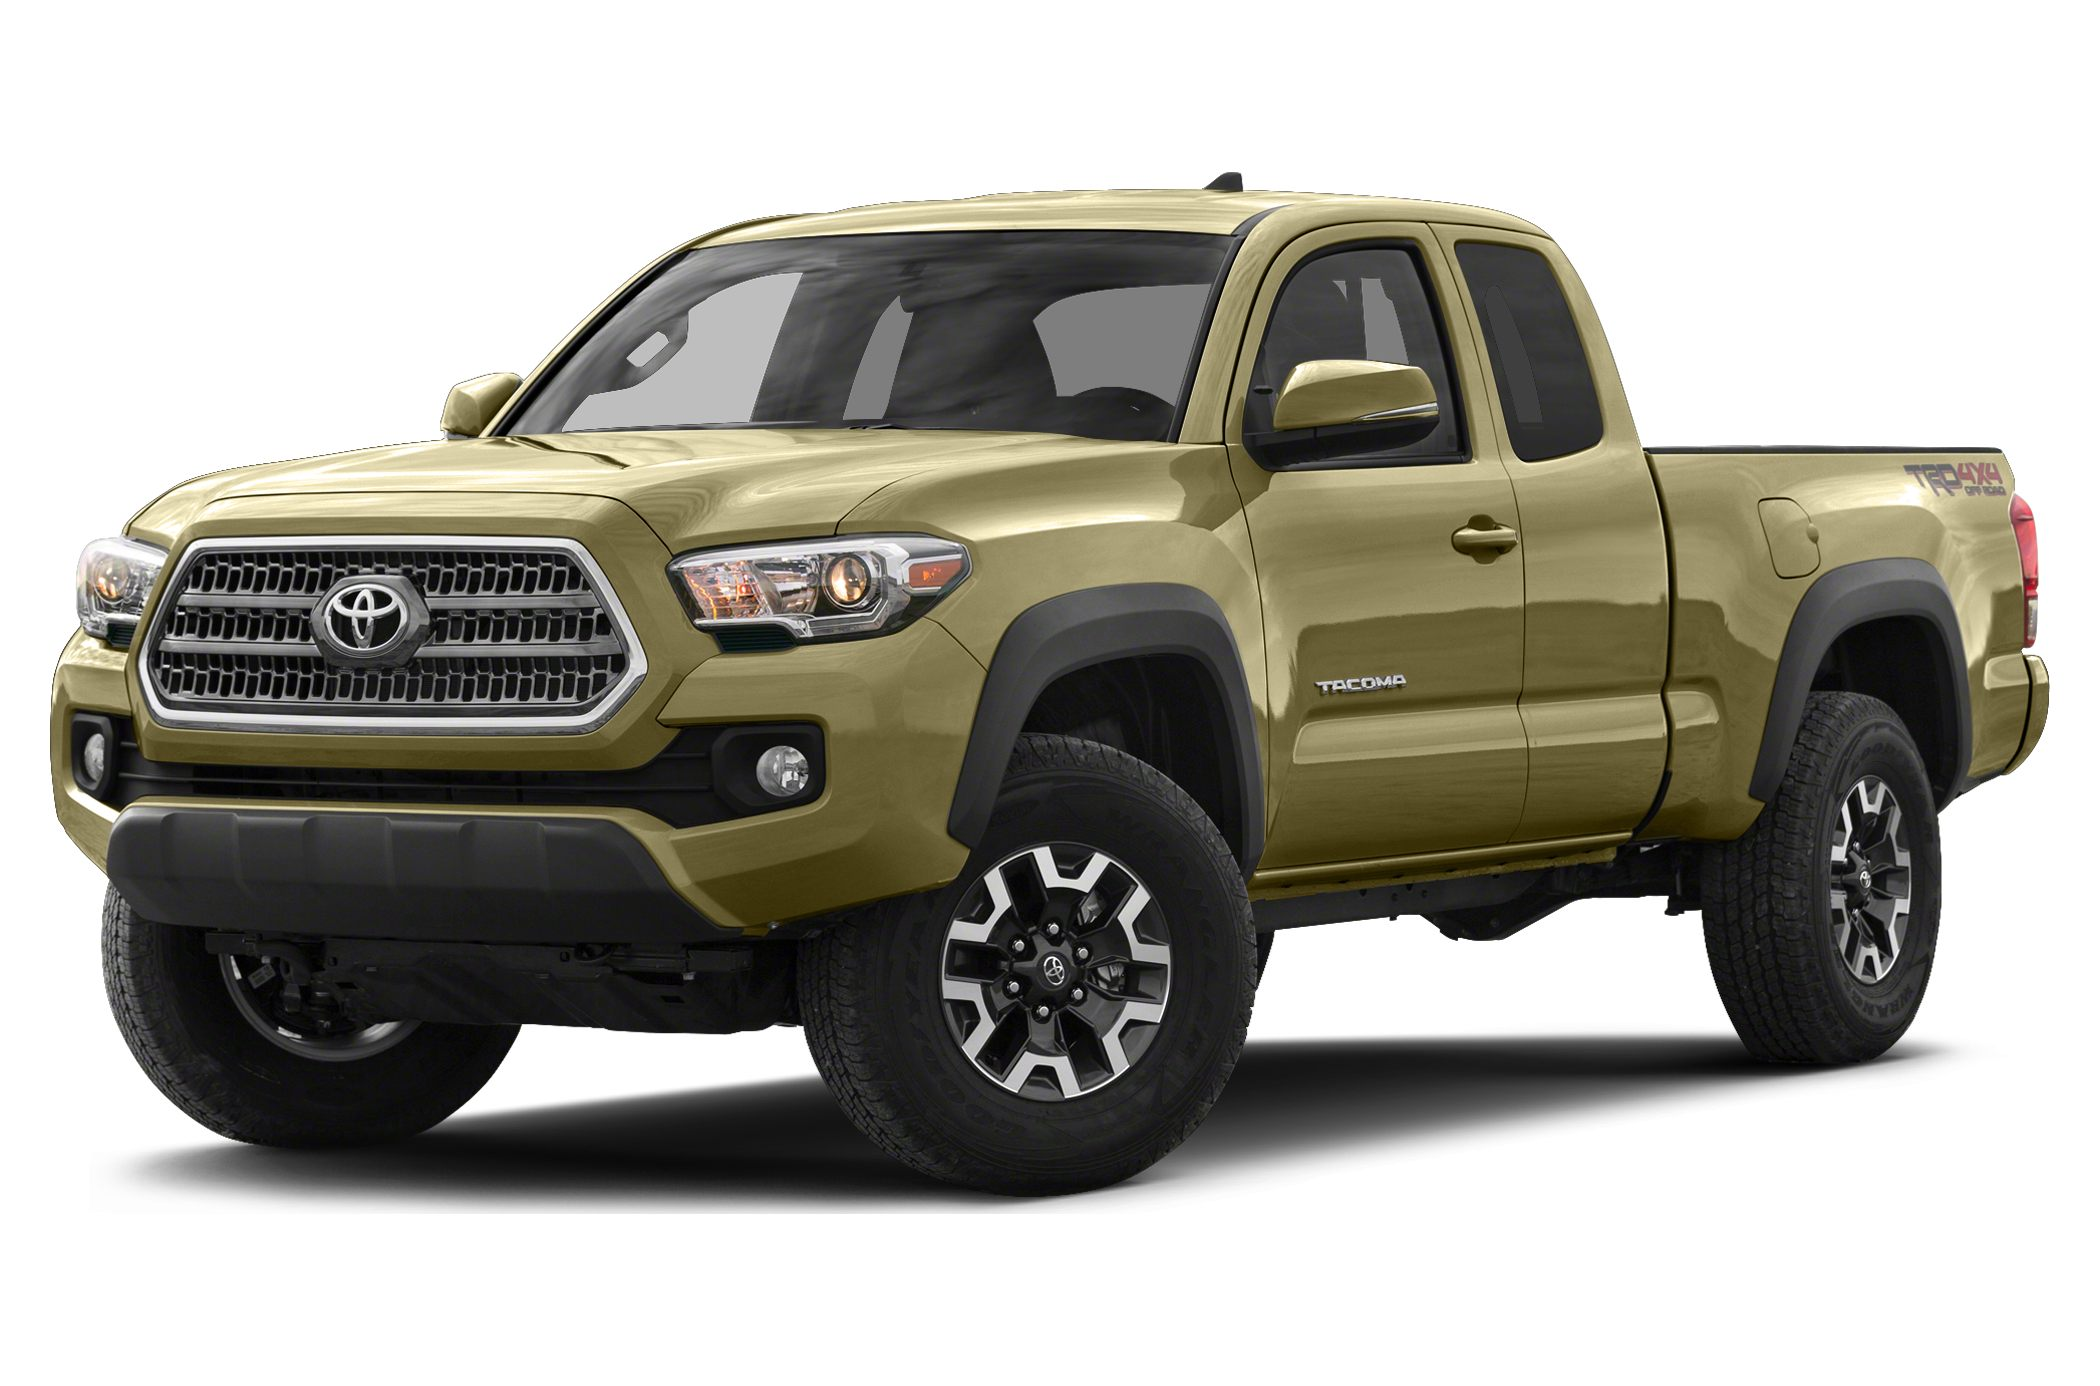 Toyota Tacoma News Photos And Buying Information Autoblog